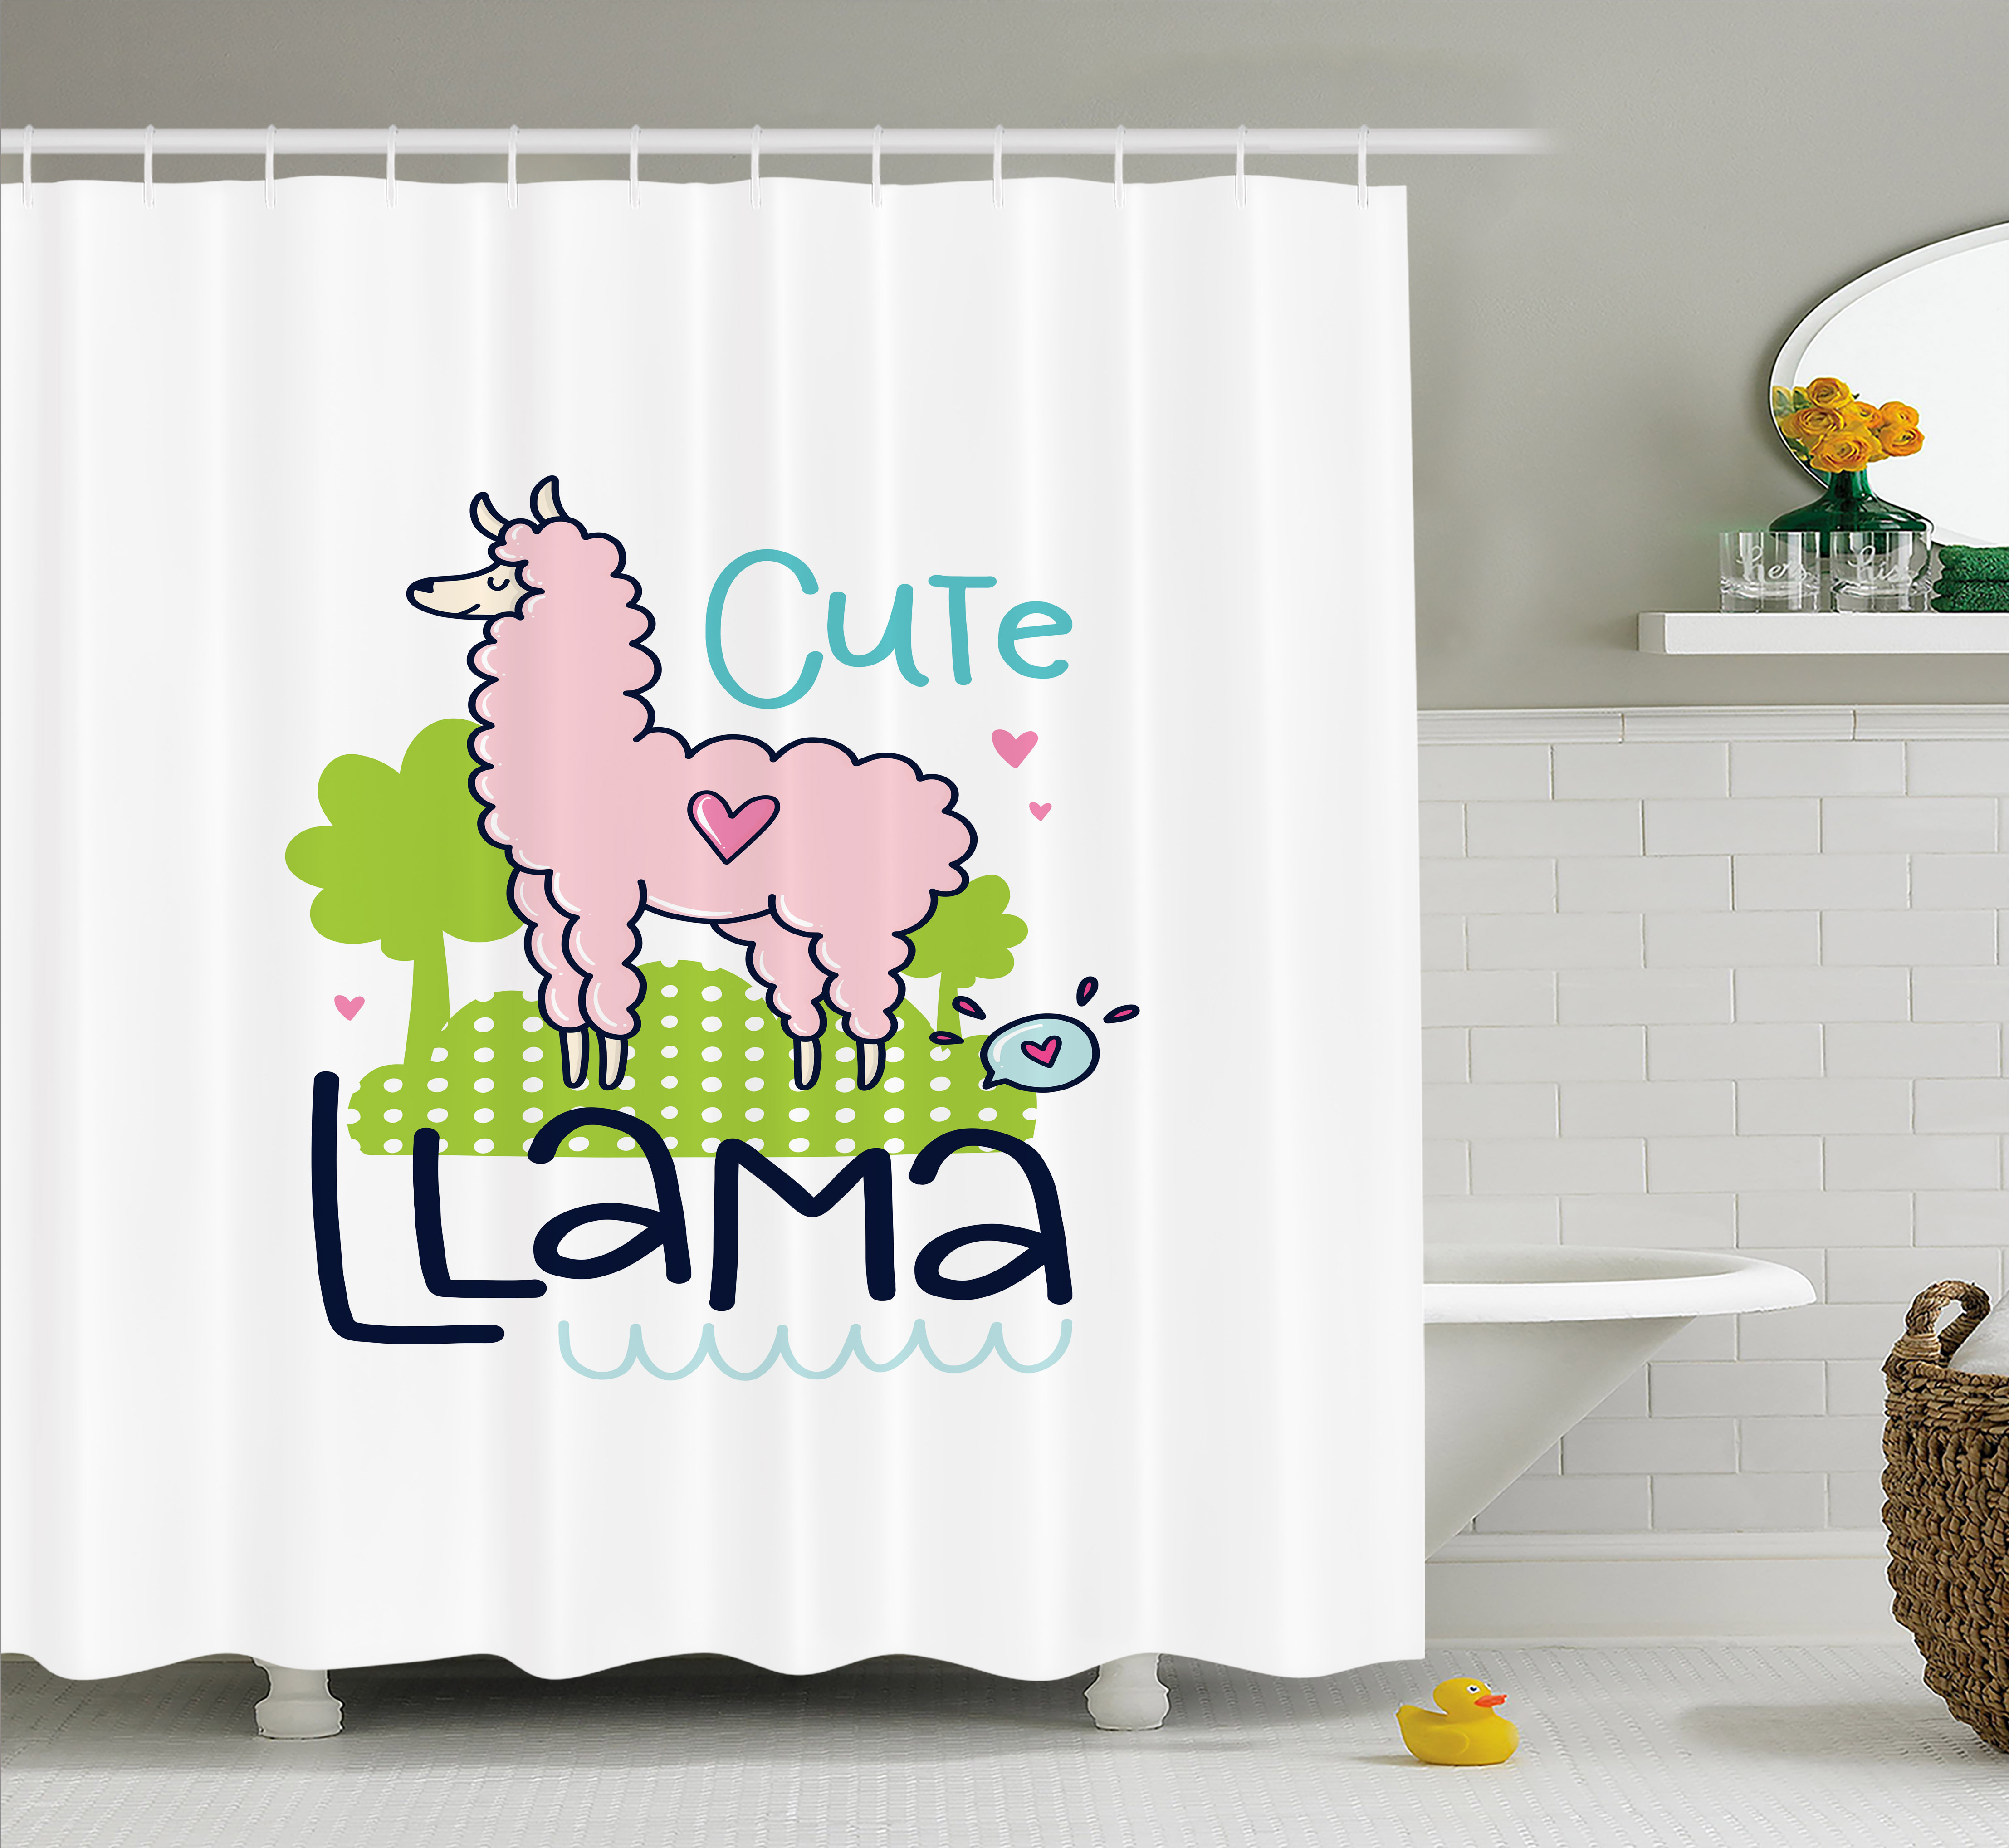 Llama Shower Curtain Cute Pattern With Abstract Color Palette Cartoon Character Design Pink Animal Fabric Bathroom Set Hooks 69W X 75L Inches